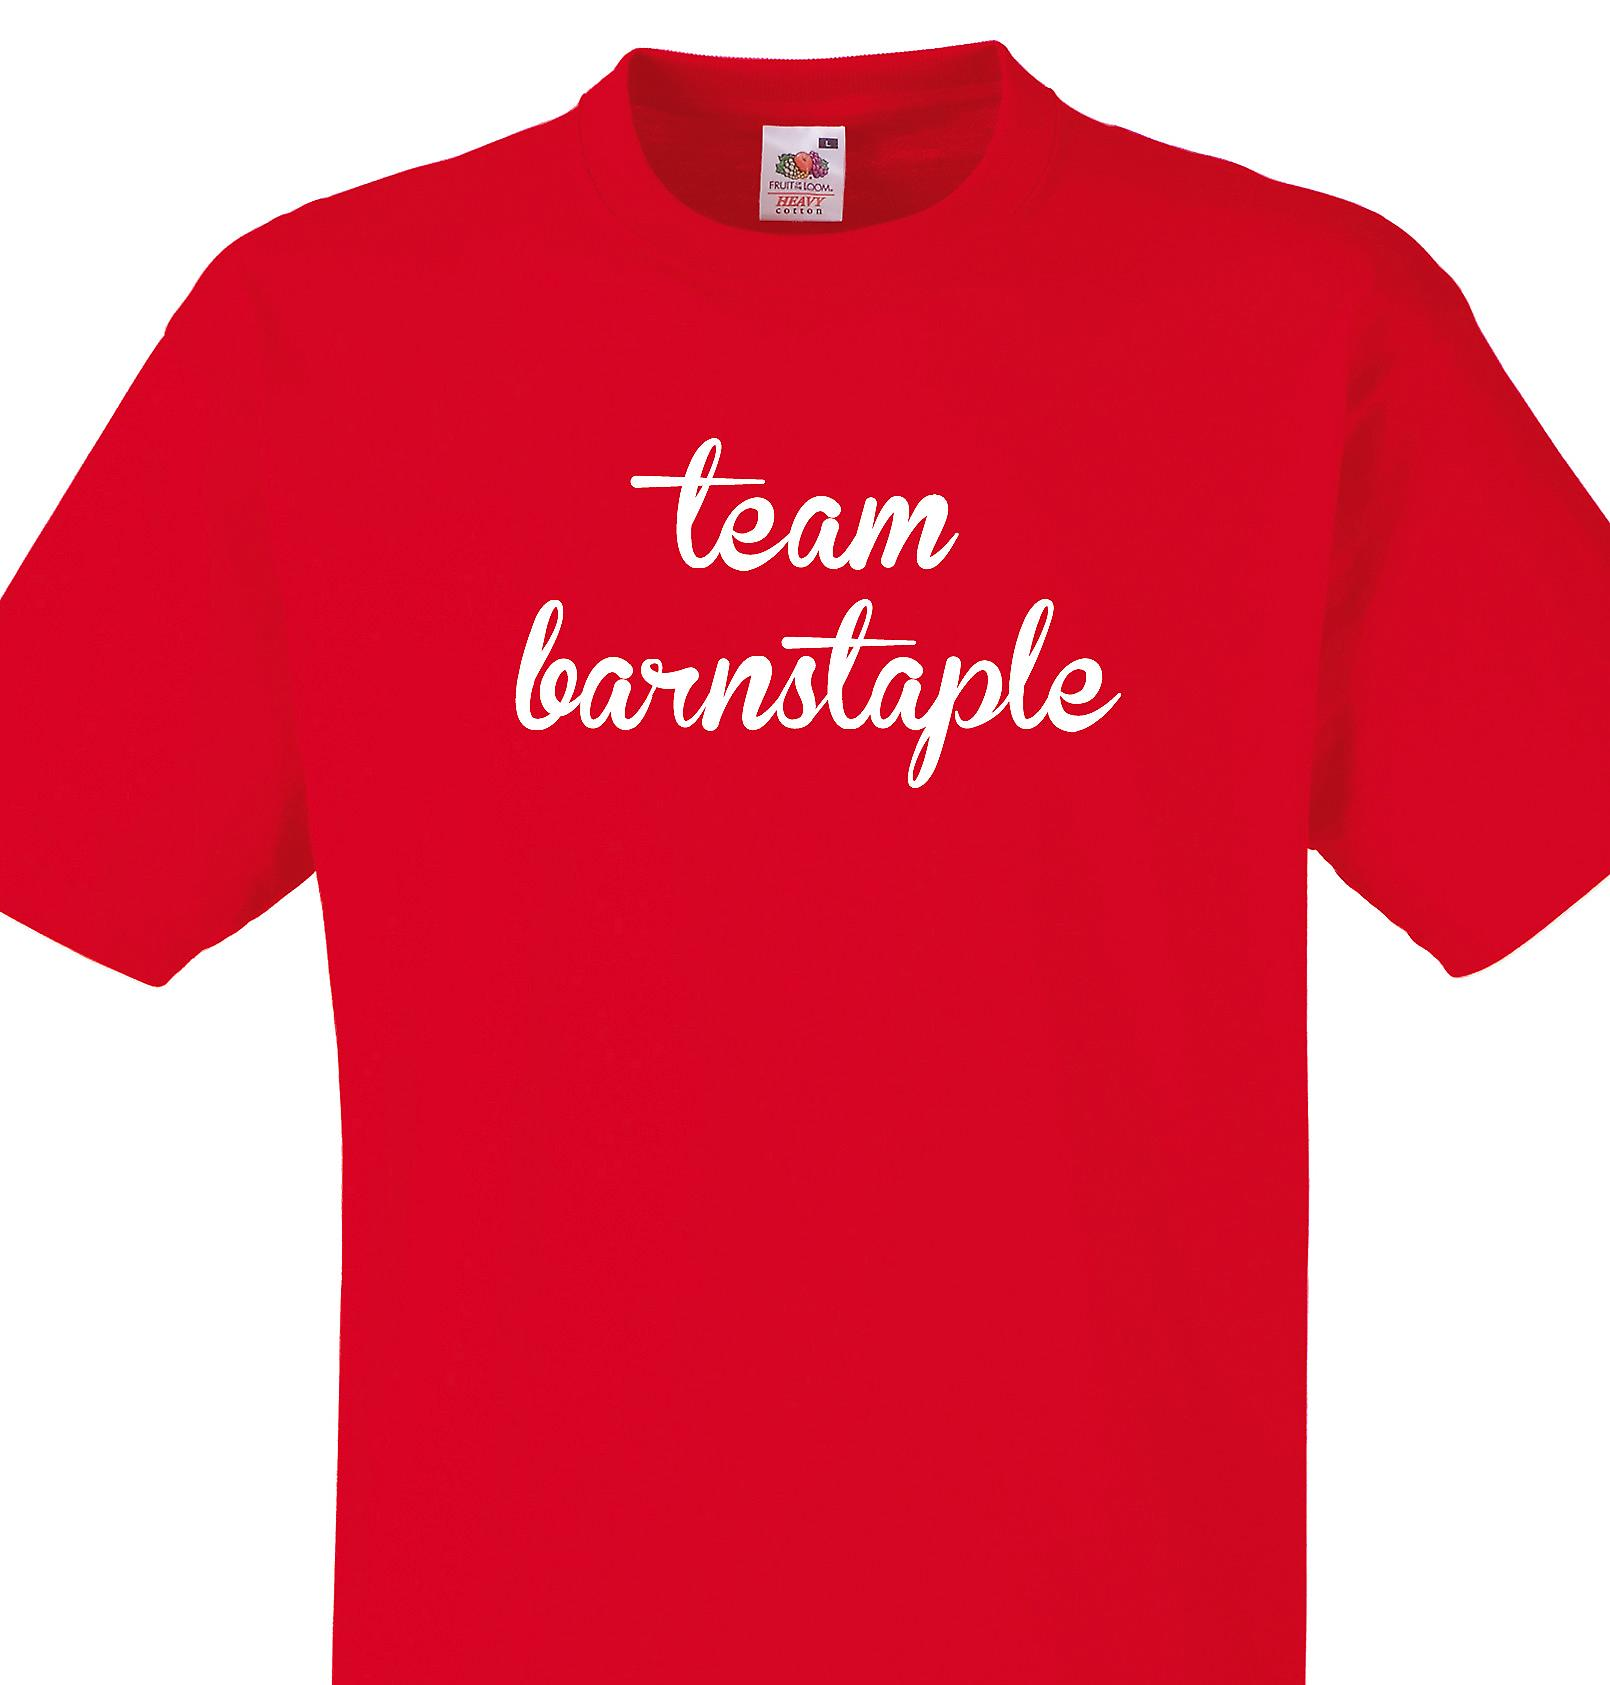 Team Barnstaple Red T shirt